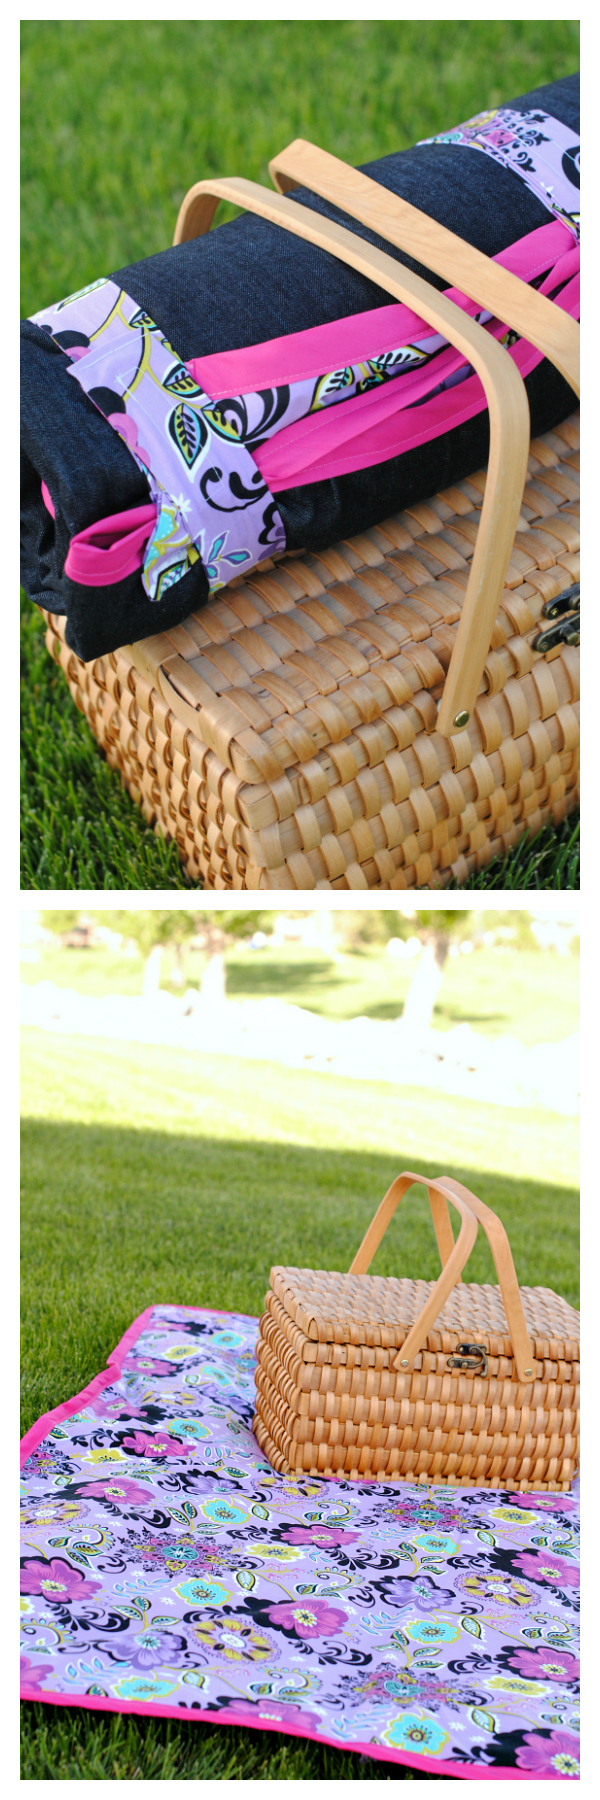 Cute DIY Picnic Blanket Tutorial that rolls up for easy storage